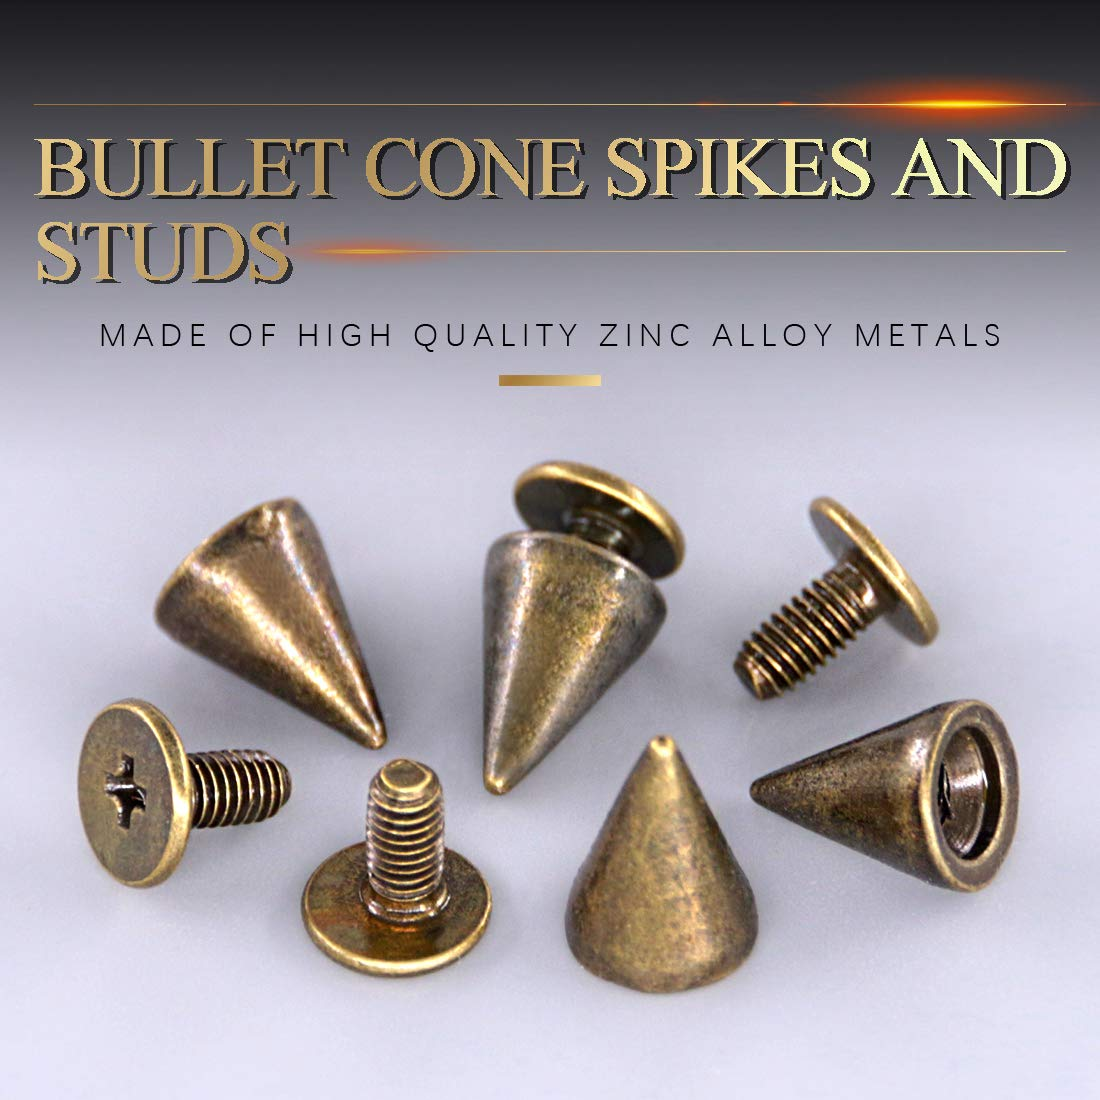 Swpeet 110 Pairs Sliver 7mm x 9.5mm Bullet Cone Spike and Stud Metal Screw Back for DIY Leather Craft Cool Rivets Punk Stud Coincal Layer